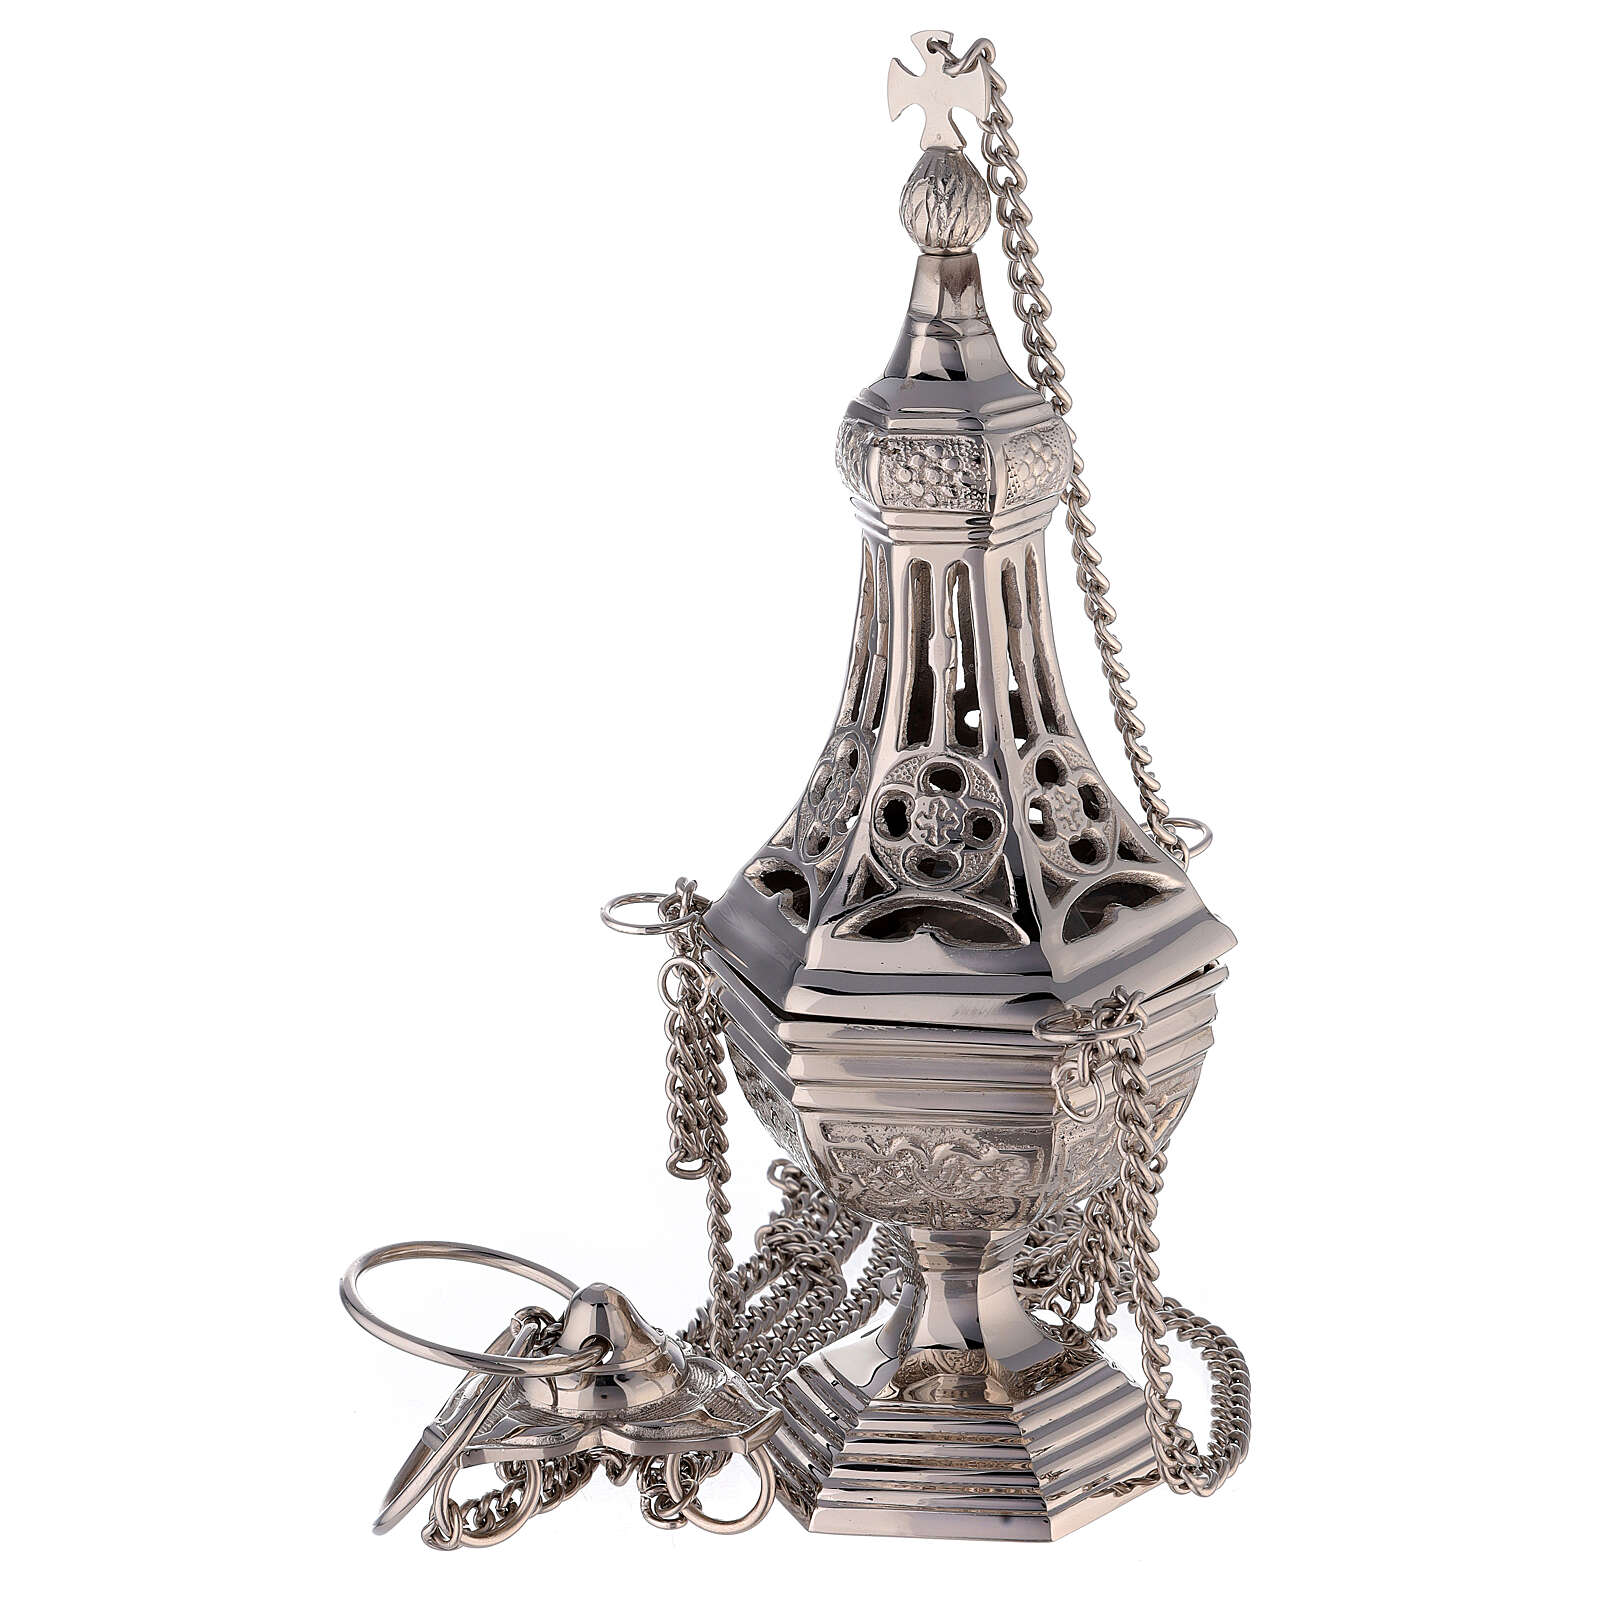 Neogothic drop-shaped thurible in nickel-plated brass 12 1/4 in 3